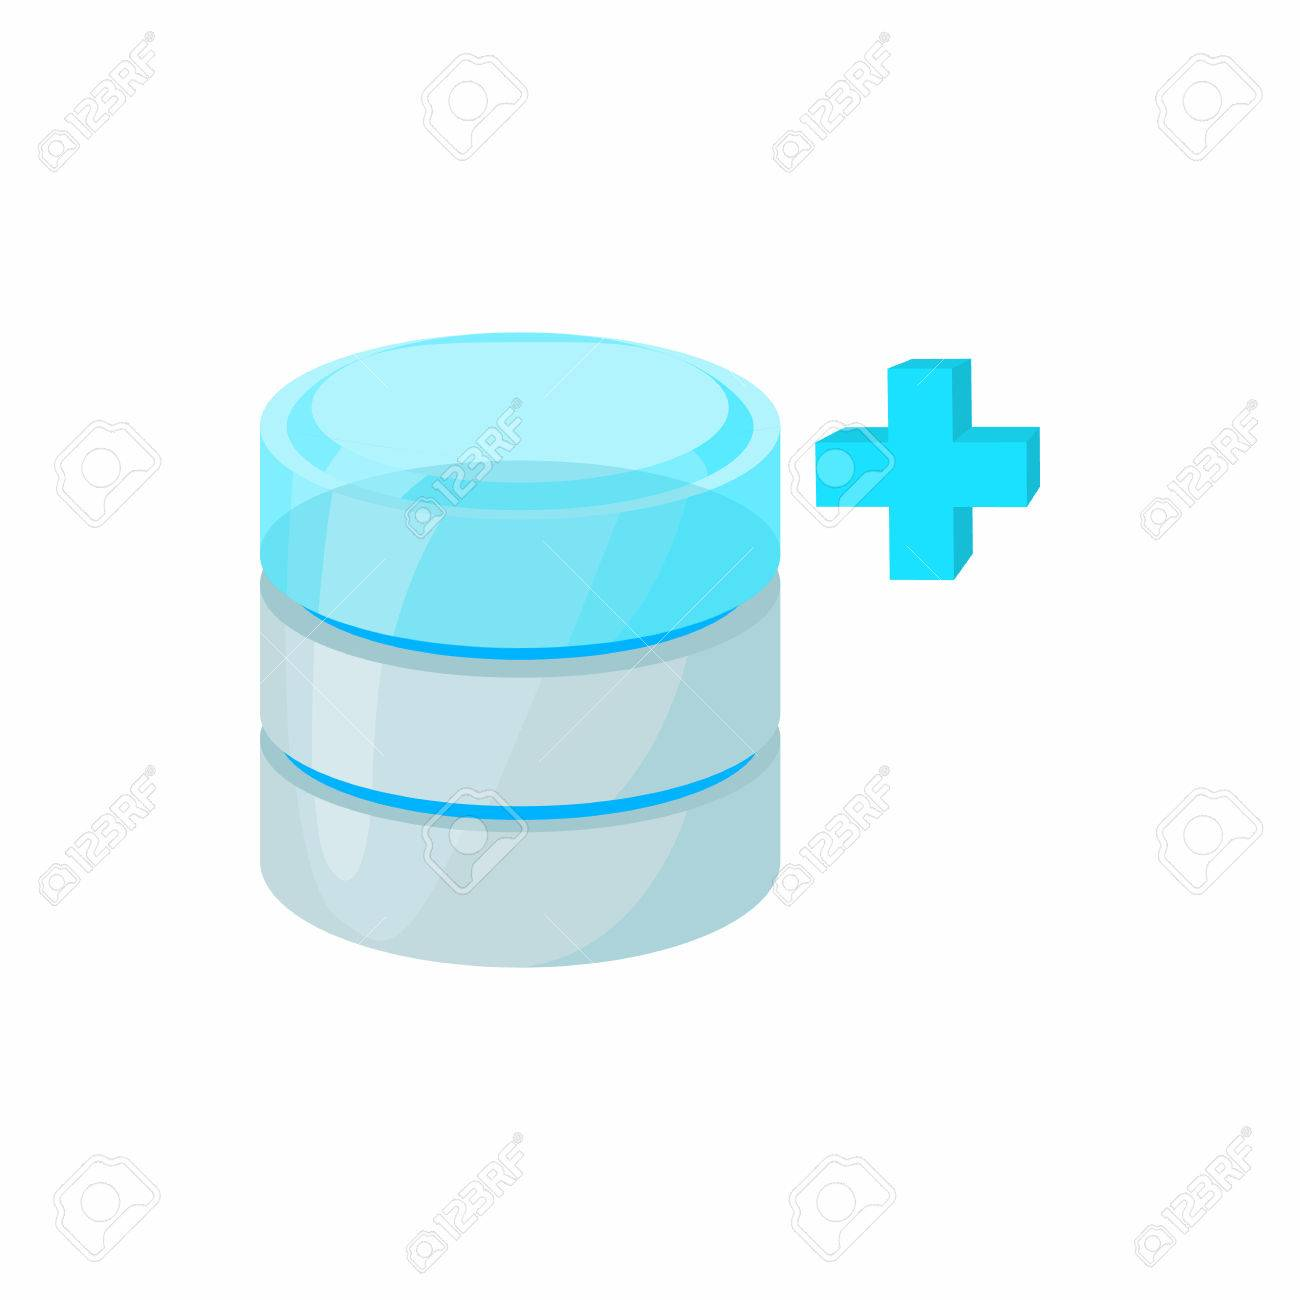 Database Architecture Icon Stock Vector Free Organizational Chart 57153114 Growth In Cartoon Style Isolated